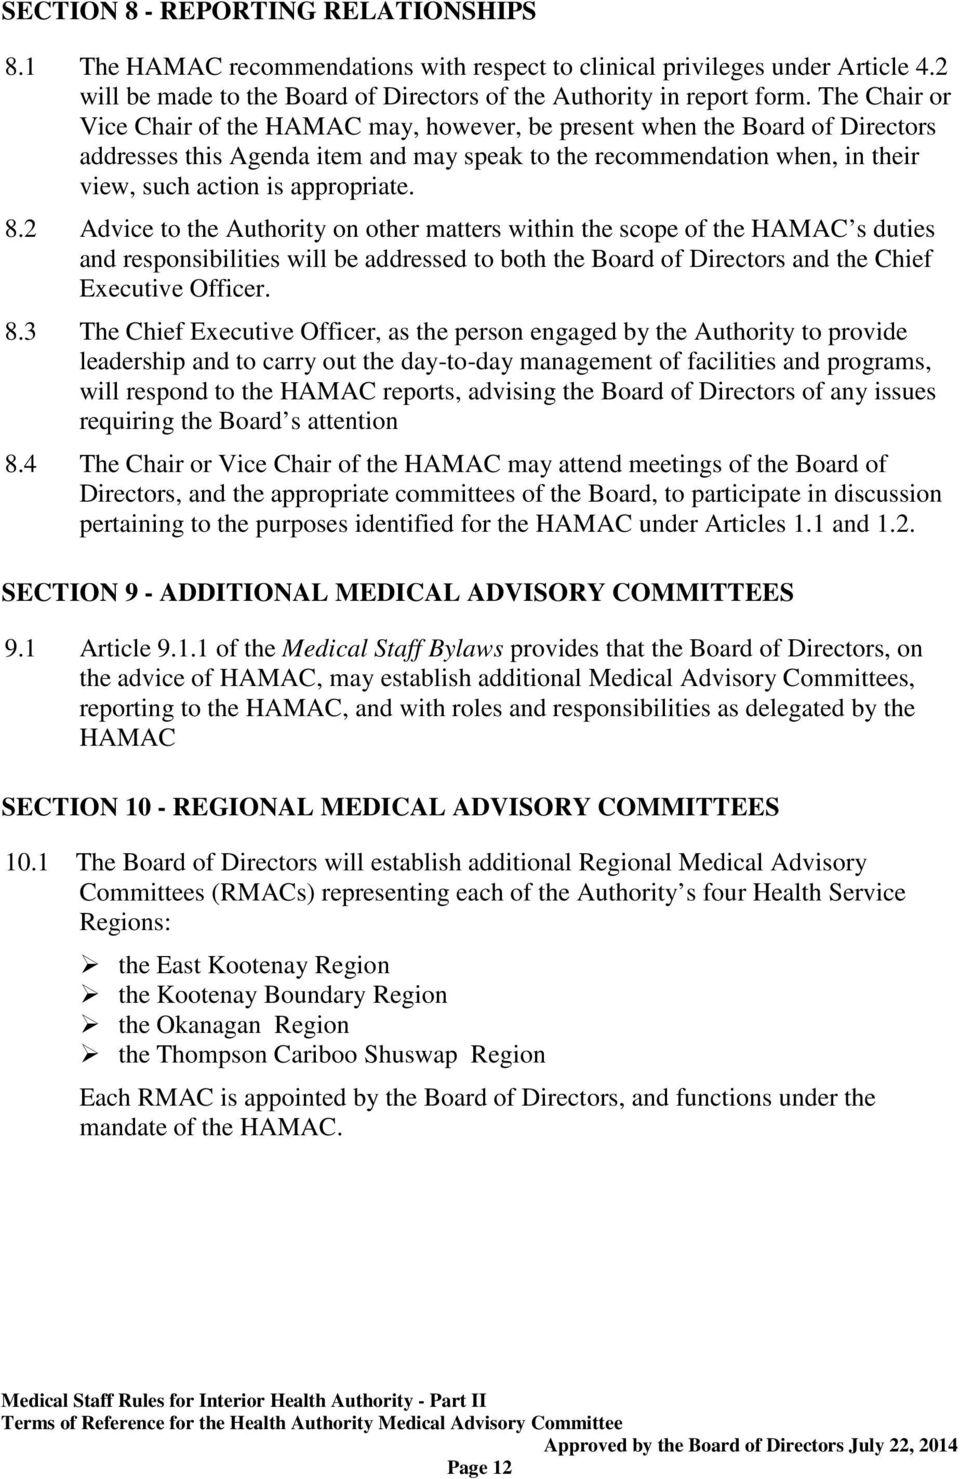 appropriate. 8.2 Advice to the Authority on other matters within the scope of the HAMAC s duties and responsibilities will be addressed to both the Board of Directors and the Chief Executive Officer.